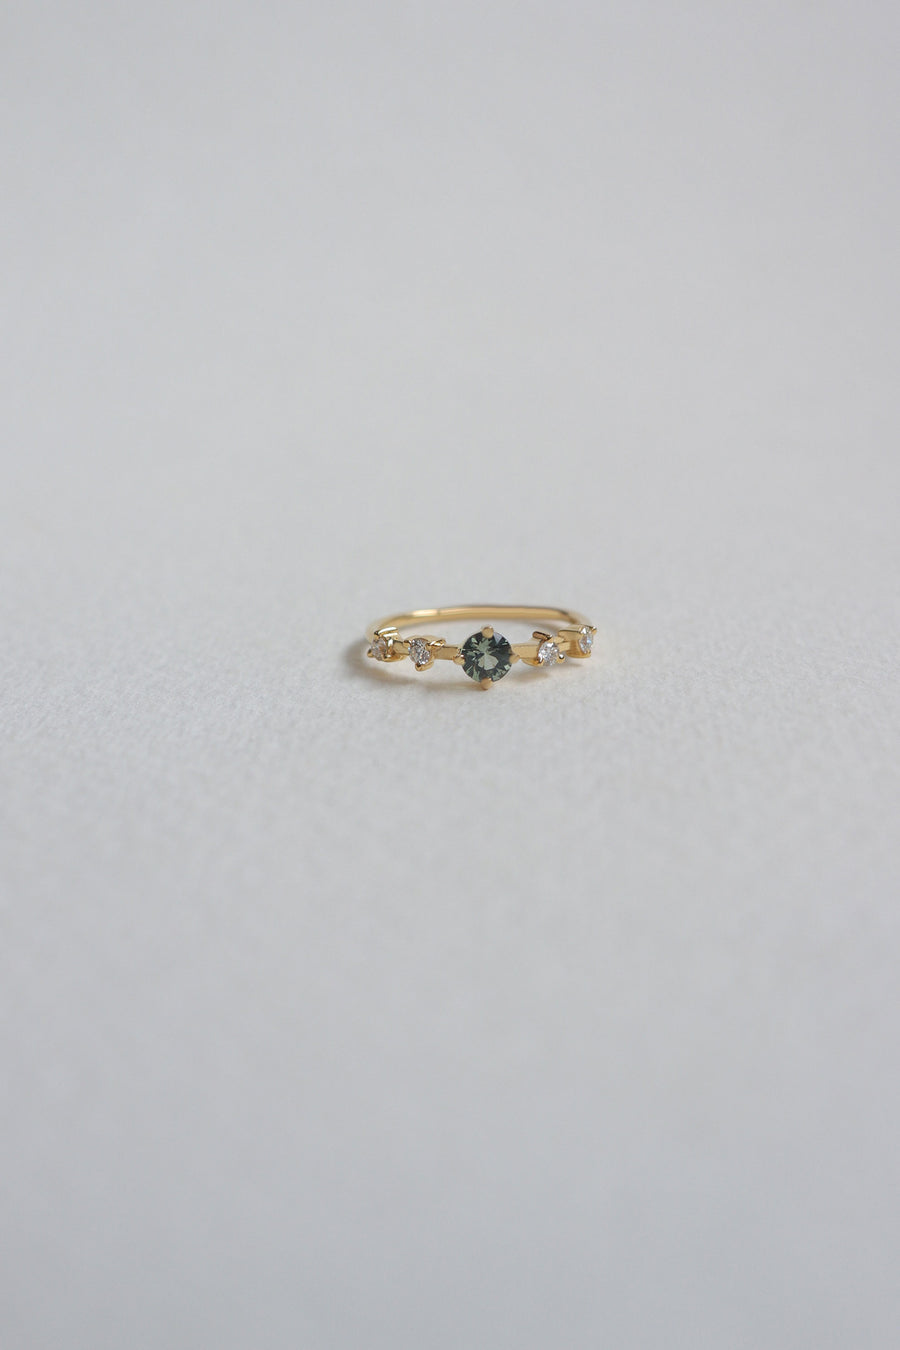 The Horizon Ring - Green Sapphire and Diamonds in 18k Gold